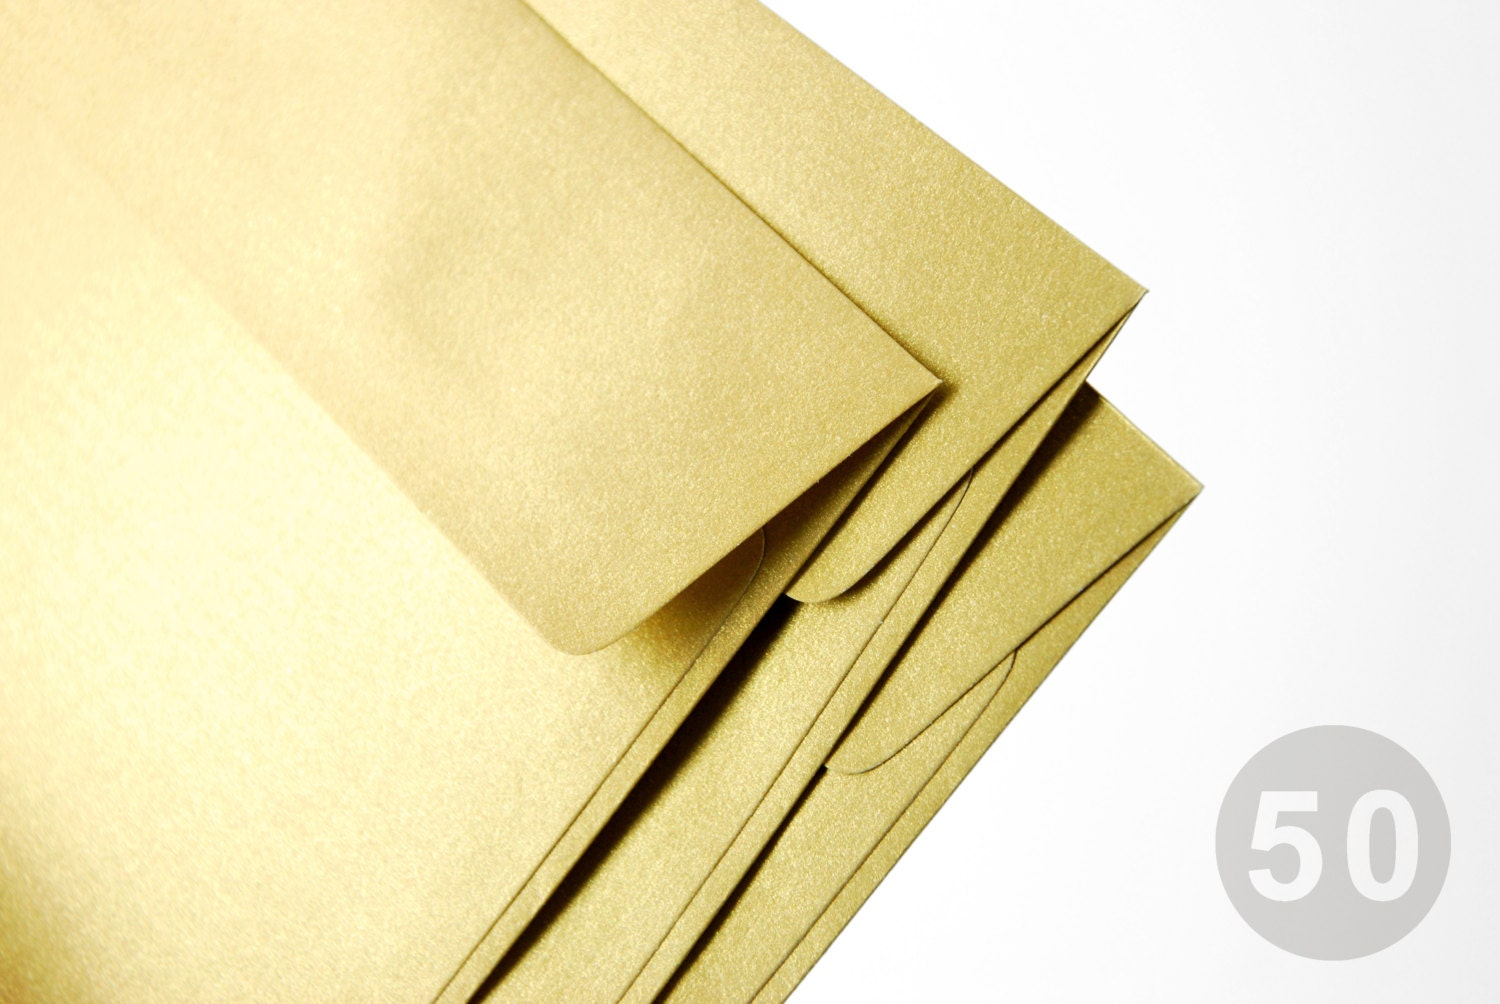 50 a7 5x7 gold envelopes perfect for 5x7